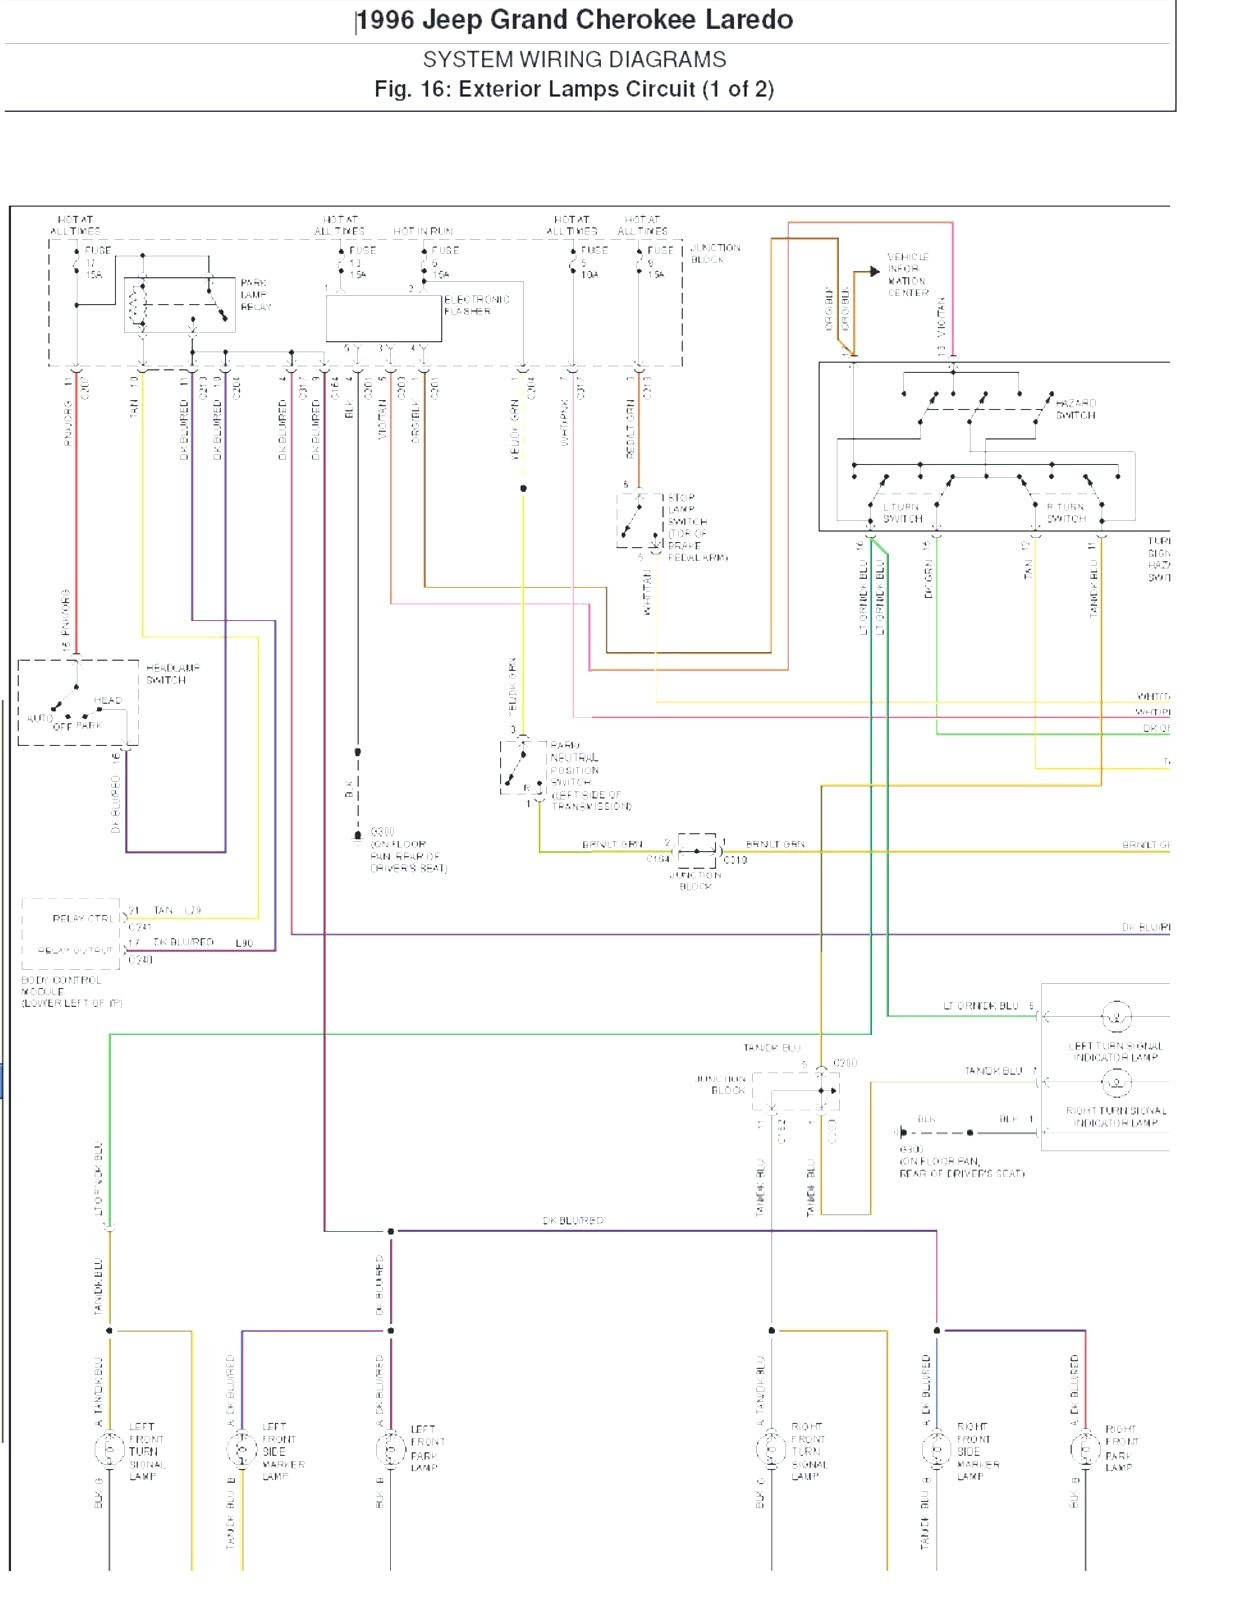 gmos 04 wiring diagram Download-Gmos 04 Wiring Diagram Pioneer avh x2800bs wiring diagram unique unique pioneer avh x2800bs pioneer 11-f